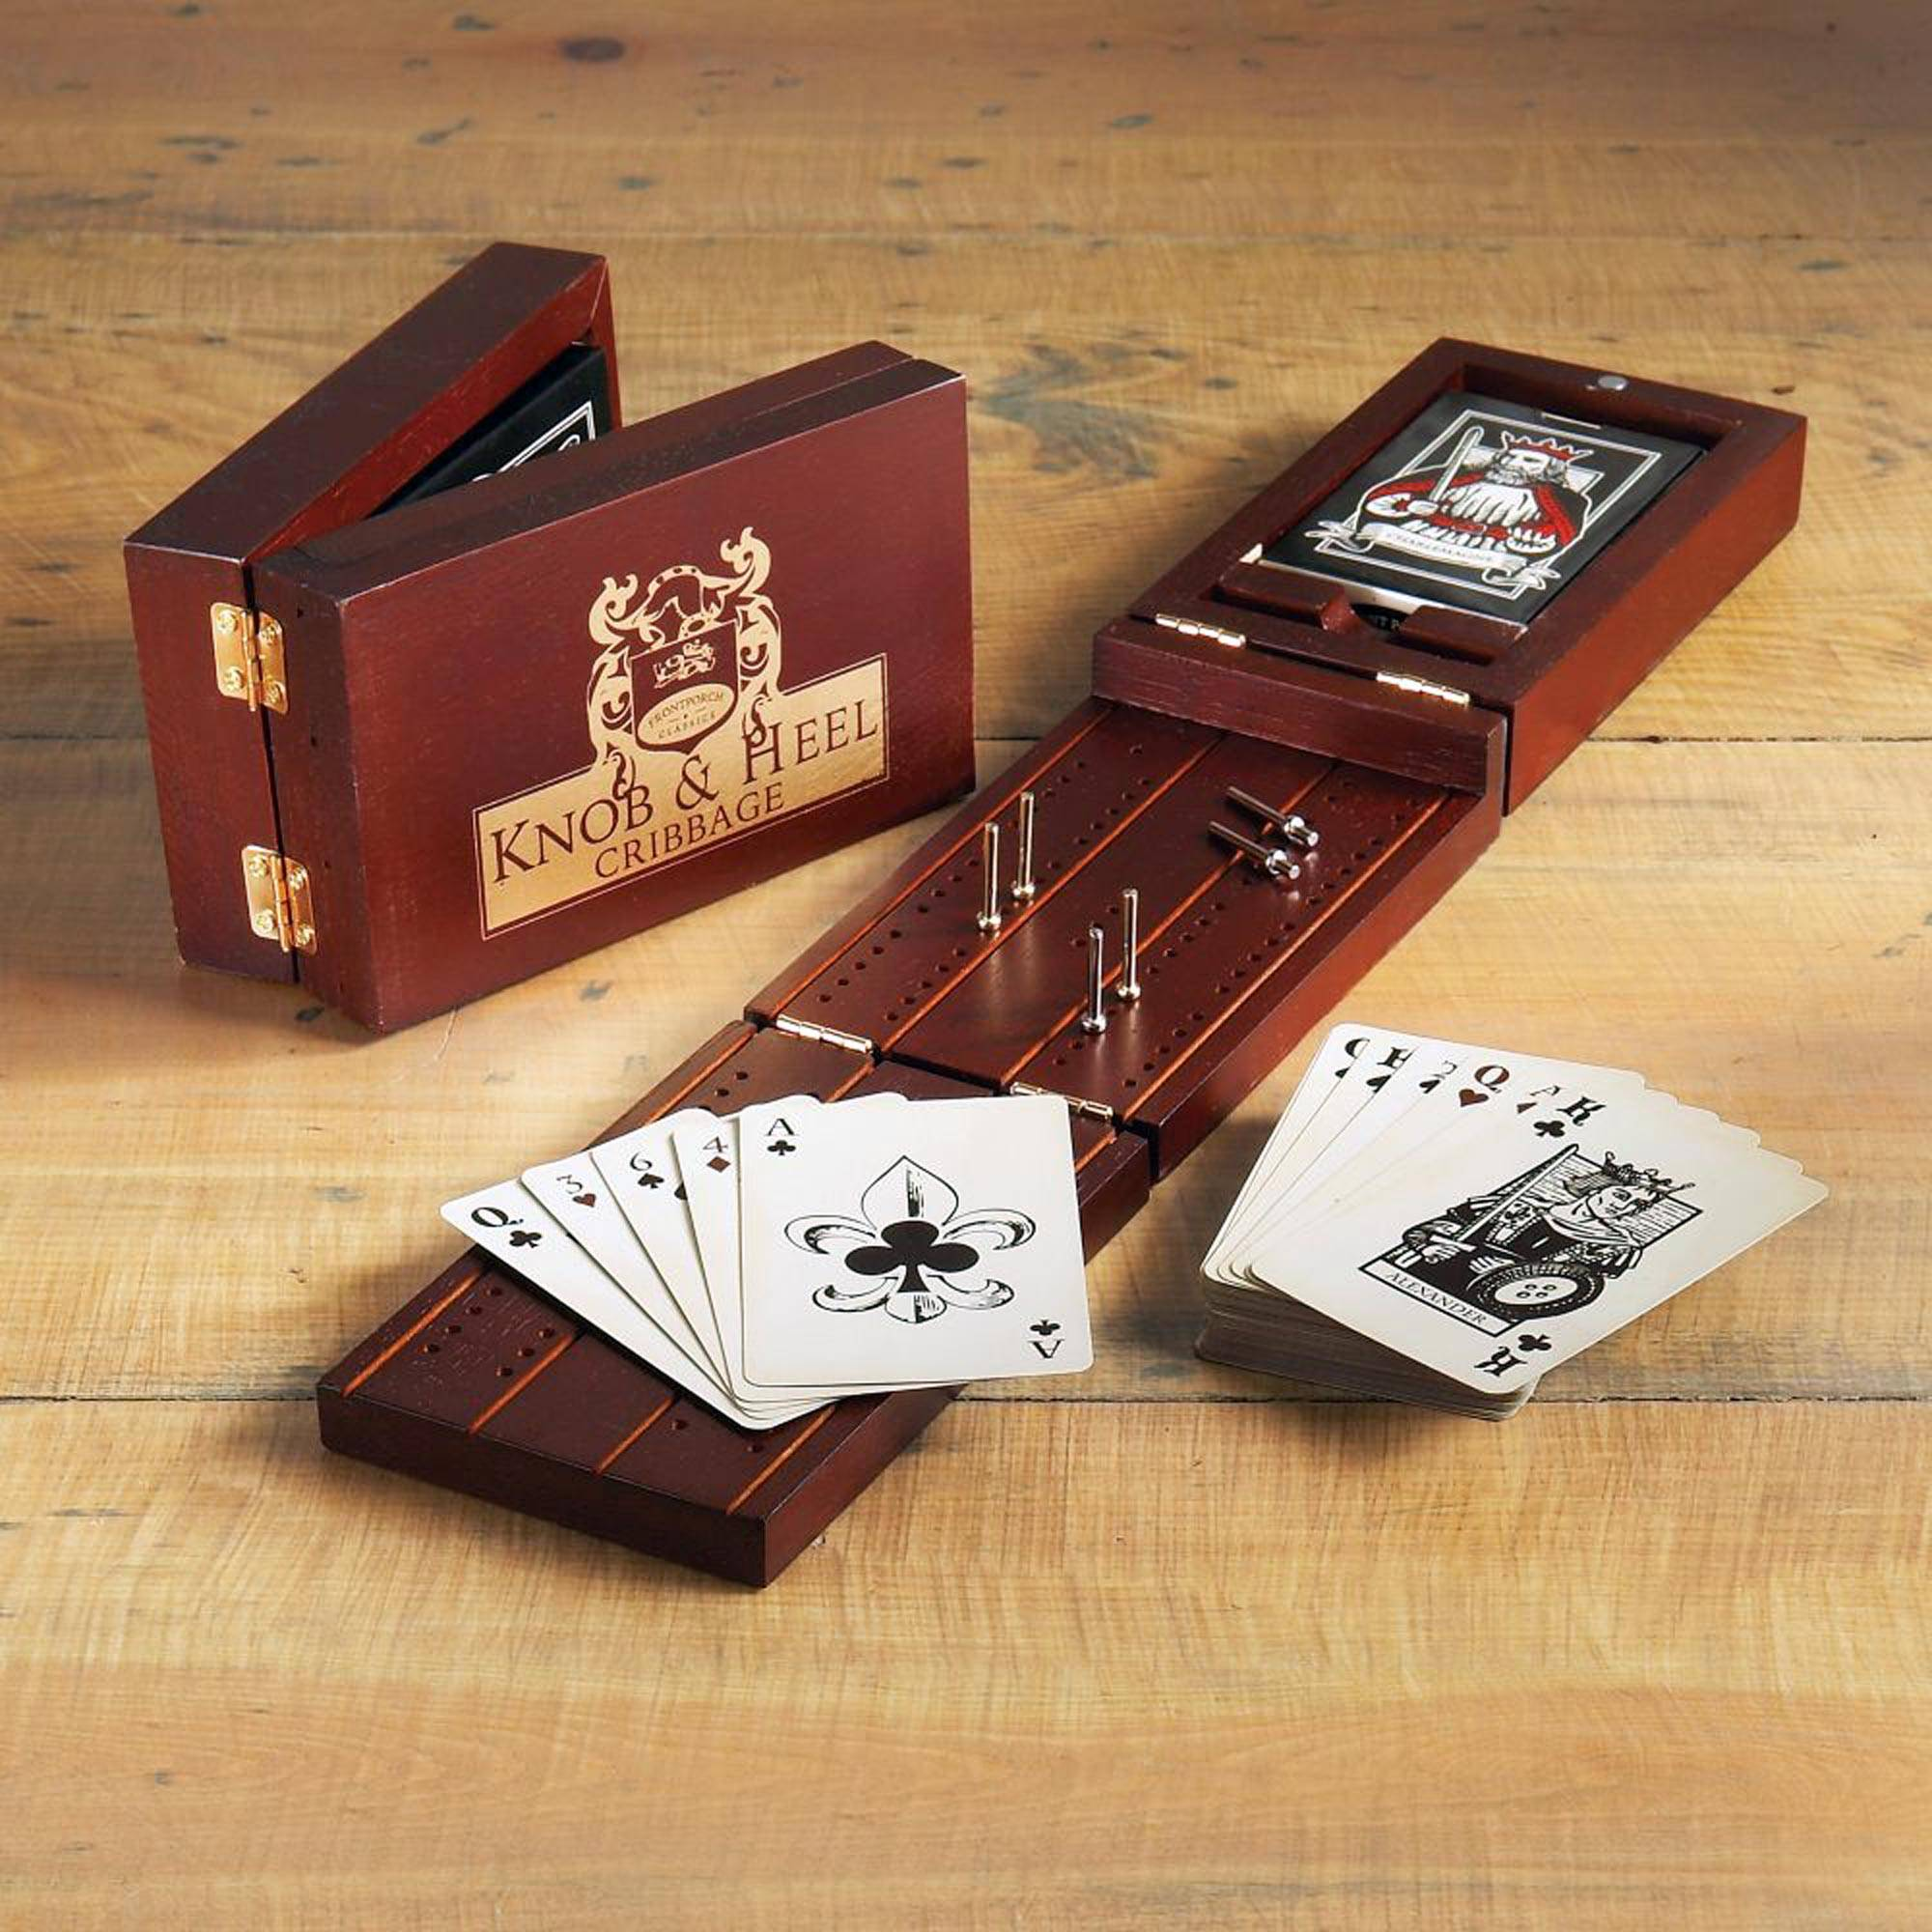 card game set wood handcrafted india full house place to call home box set Wood cribbage game, u0027Knob and Heelu0027 - English Pub Cribbage Game